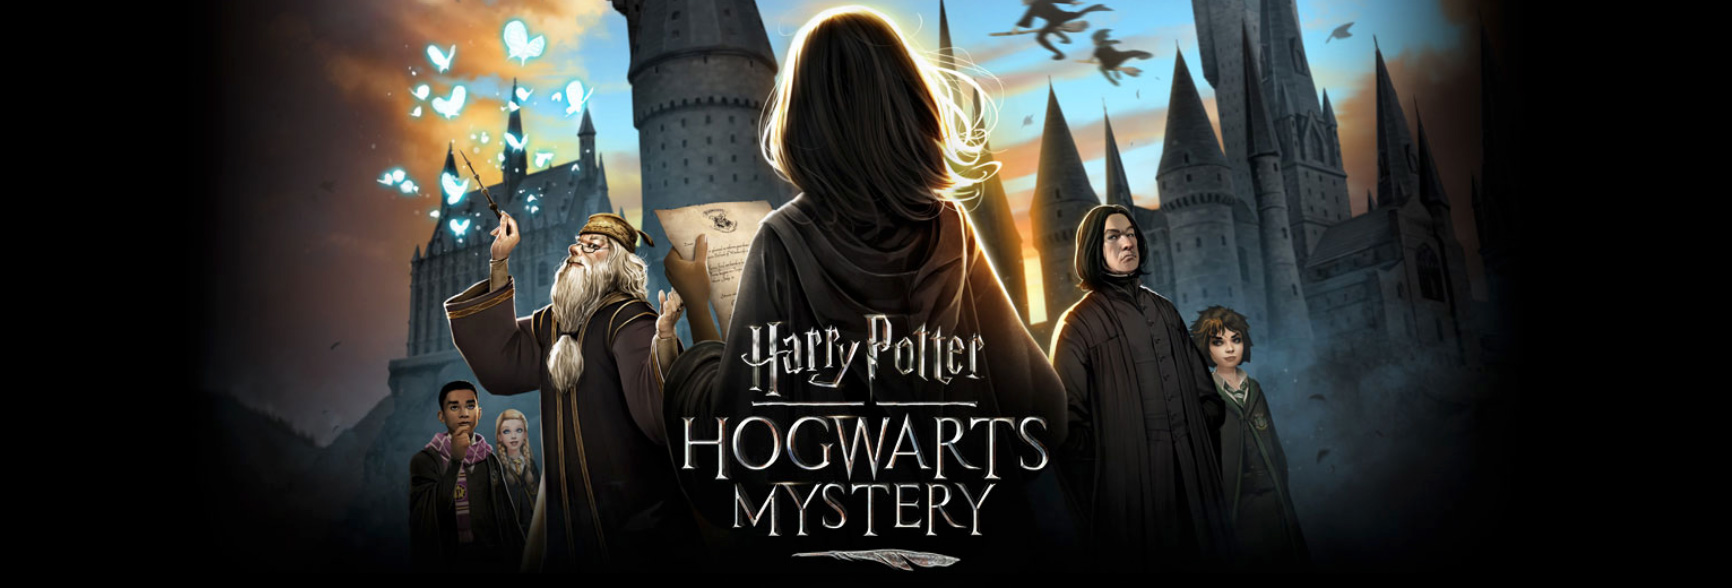 Harry Potter: Hogwarts Mystery Will Arrive Sometime in 2018